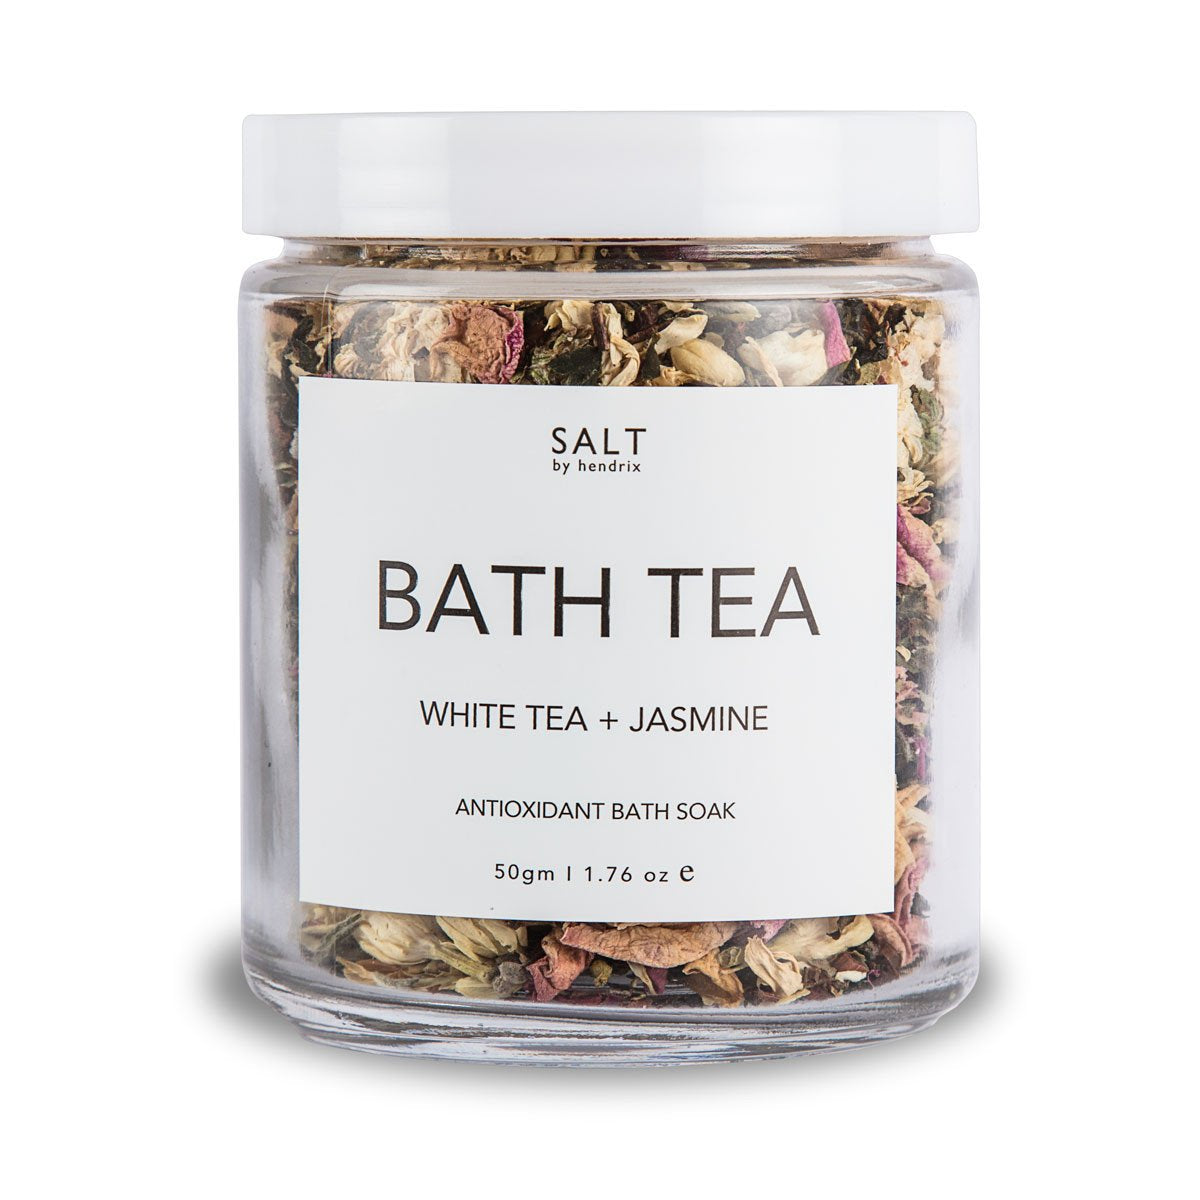 BATH TEA - WHITE TEA + JASMINE